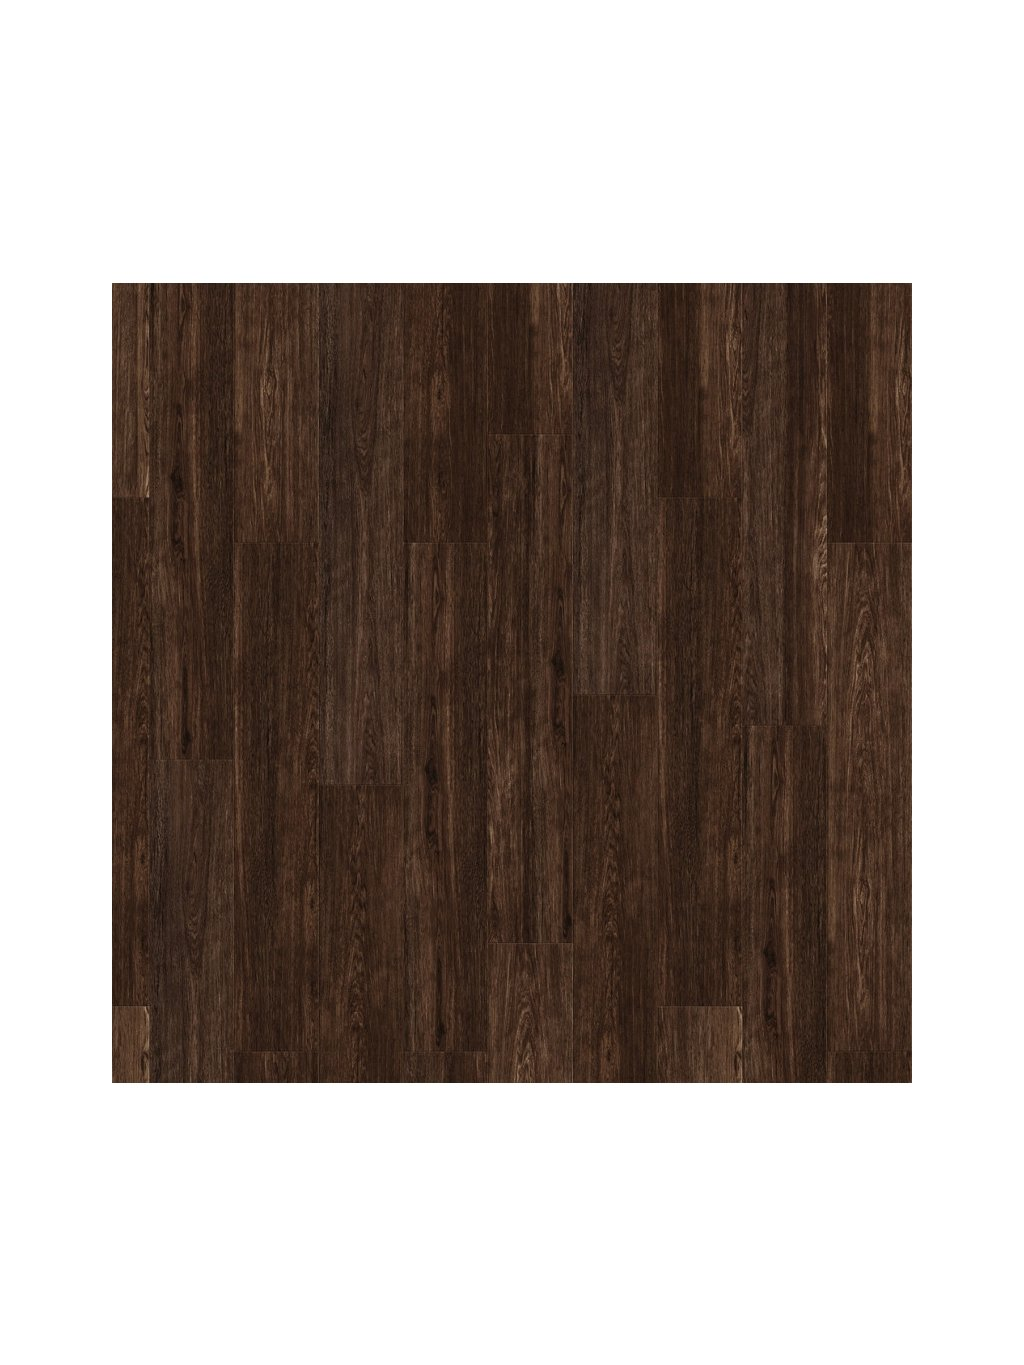 Expona Commercial 4030 Brushed Oak